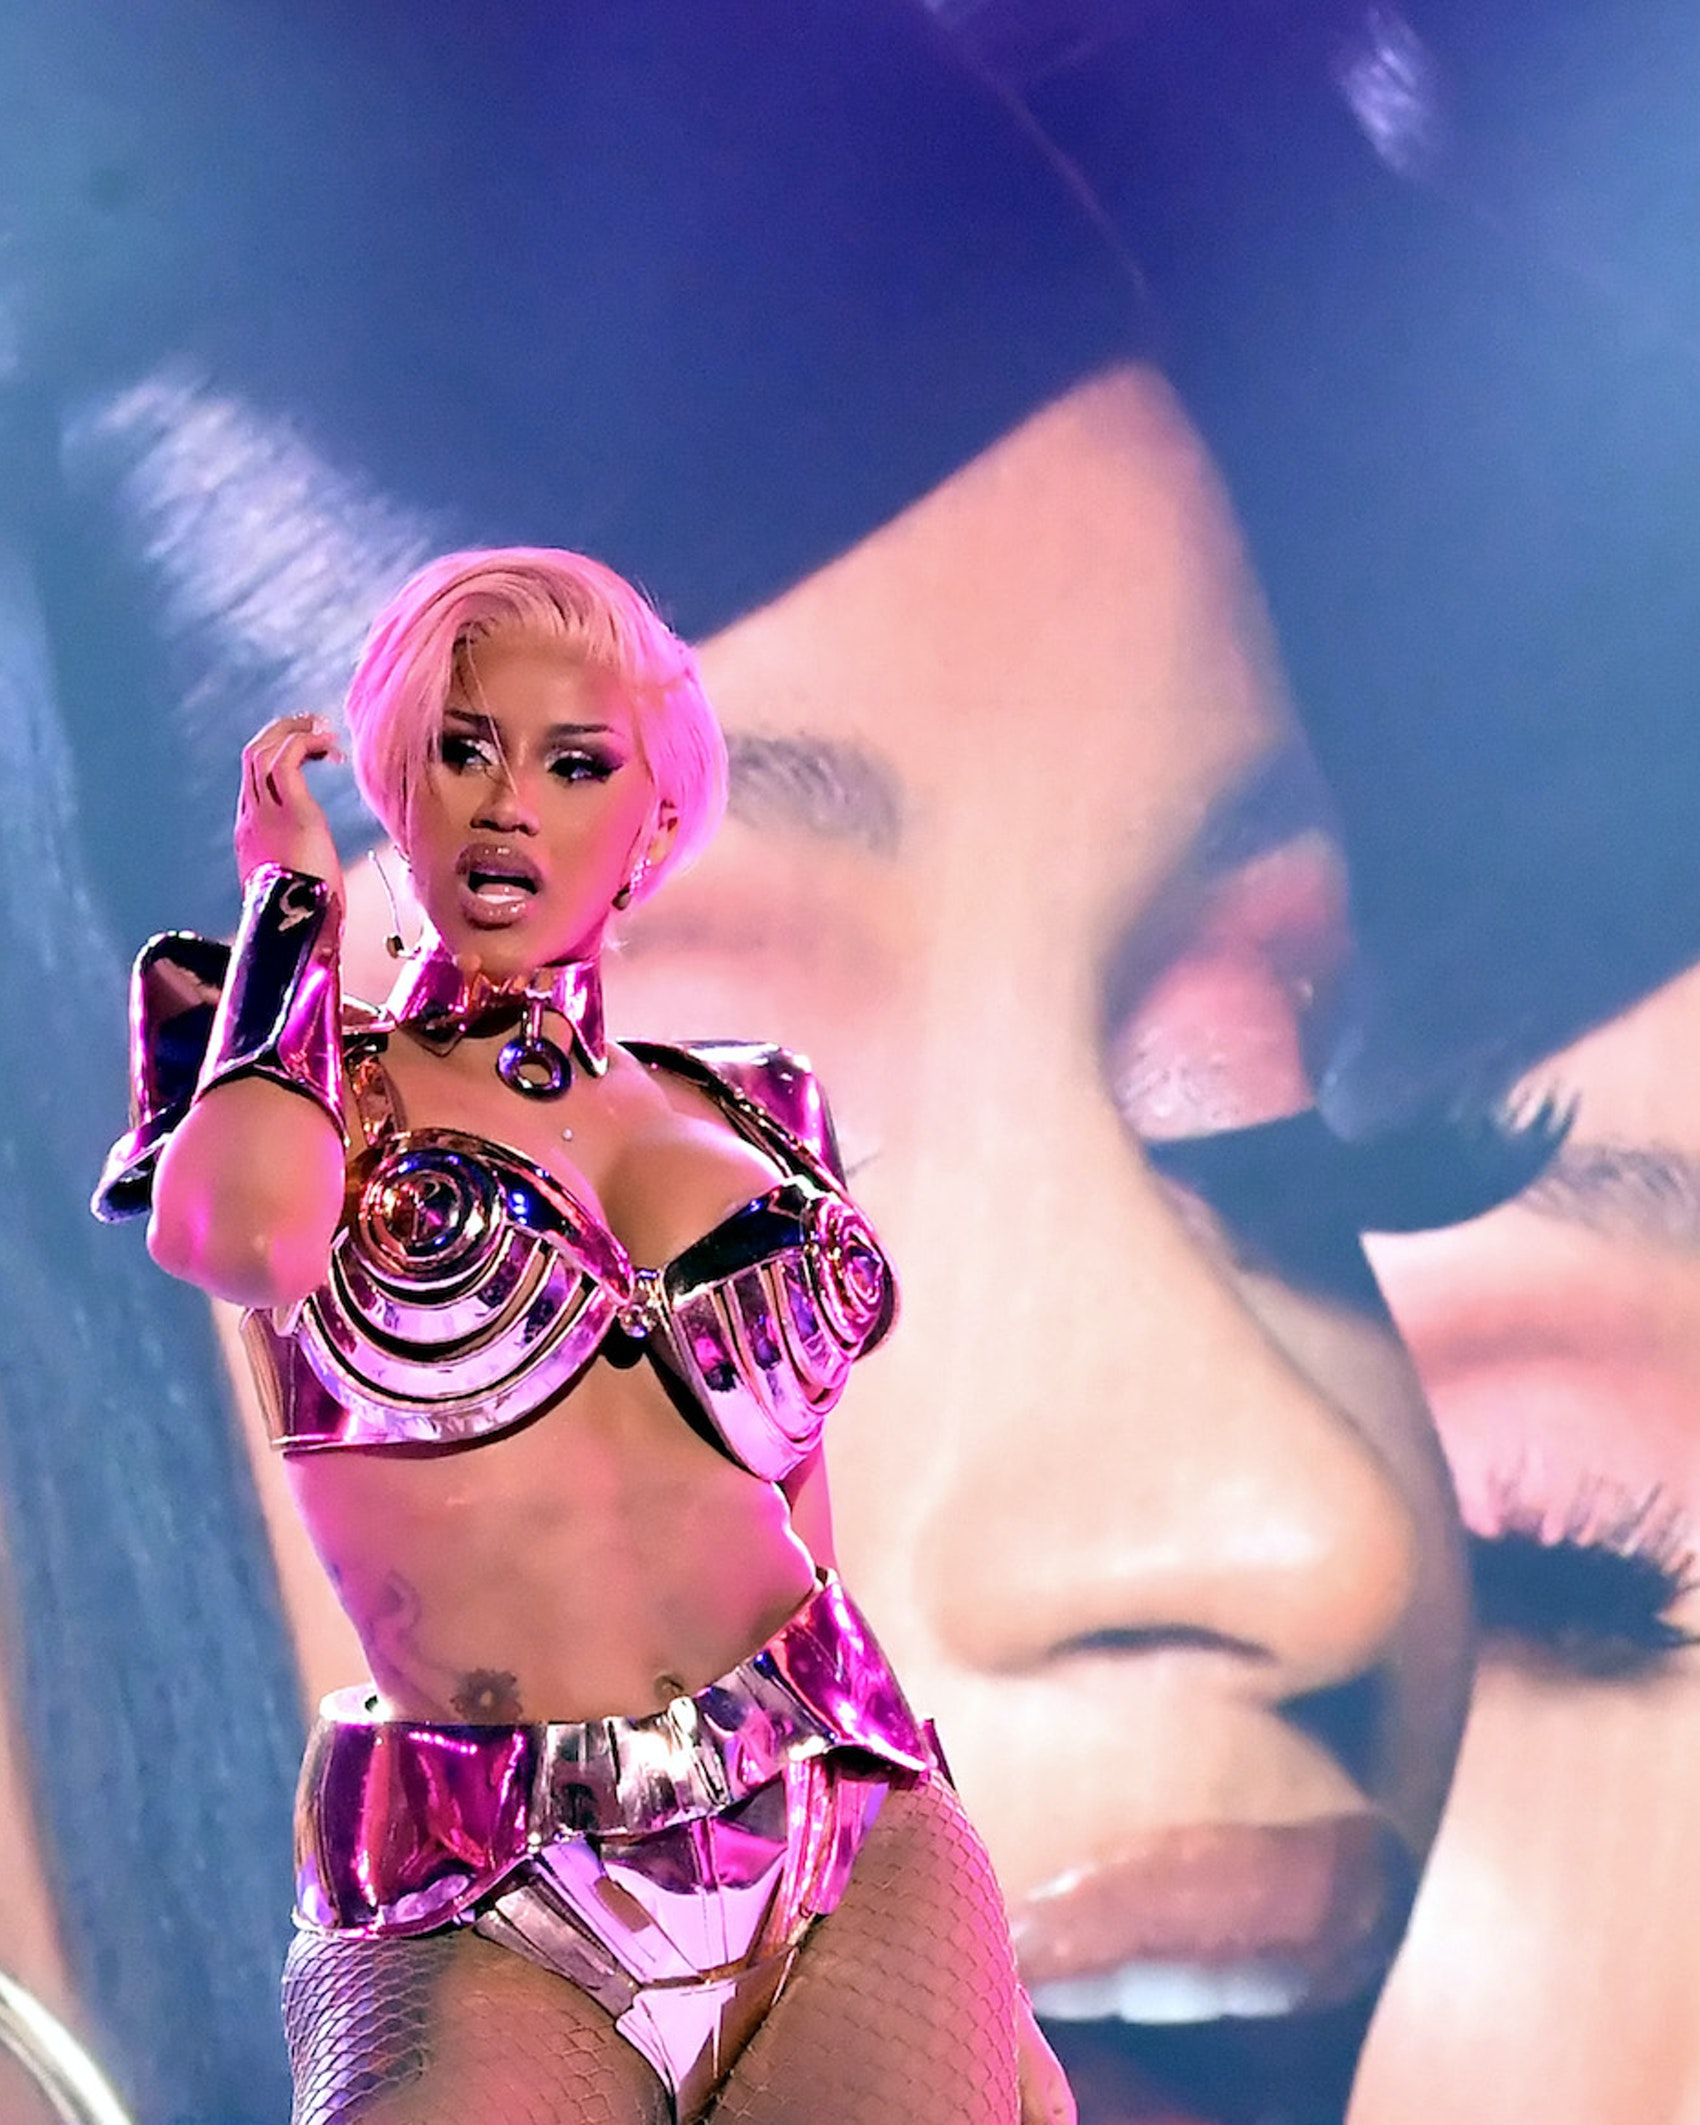 In this image released on March 14, Cardi B performs onstage during the 63rd Annual GRAMMY Awards at Los Angeles Convention Center in Los Angeles, California and broadcast on March 14, 2021. (Photo by Kevin Winter/Getty Images for The Recording Academy)